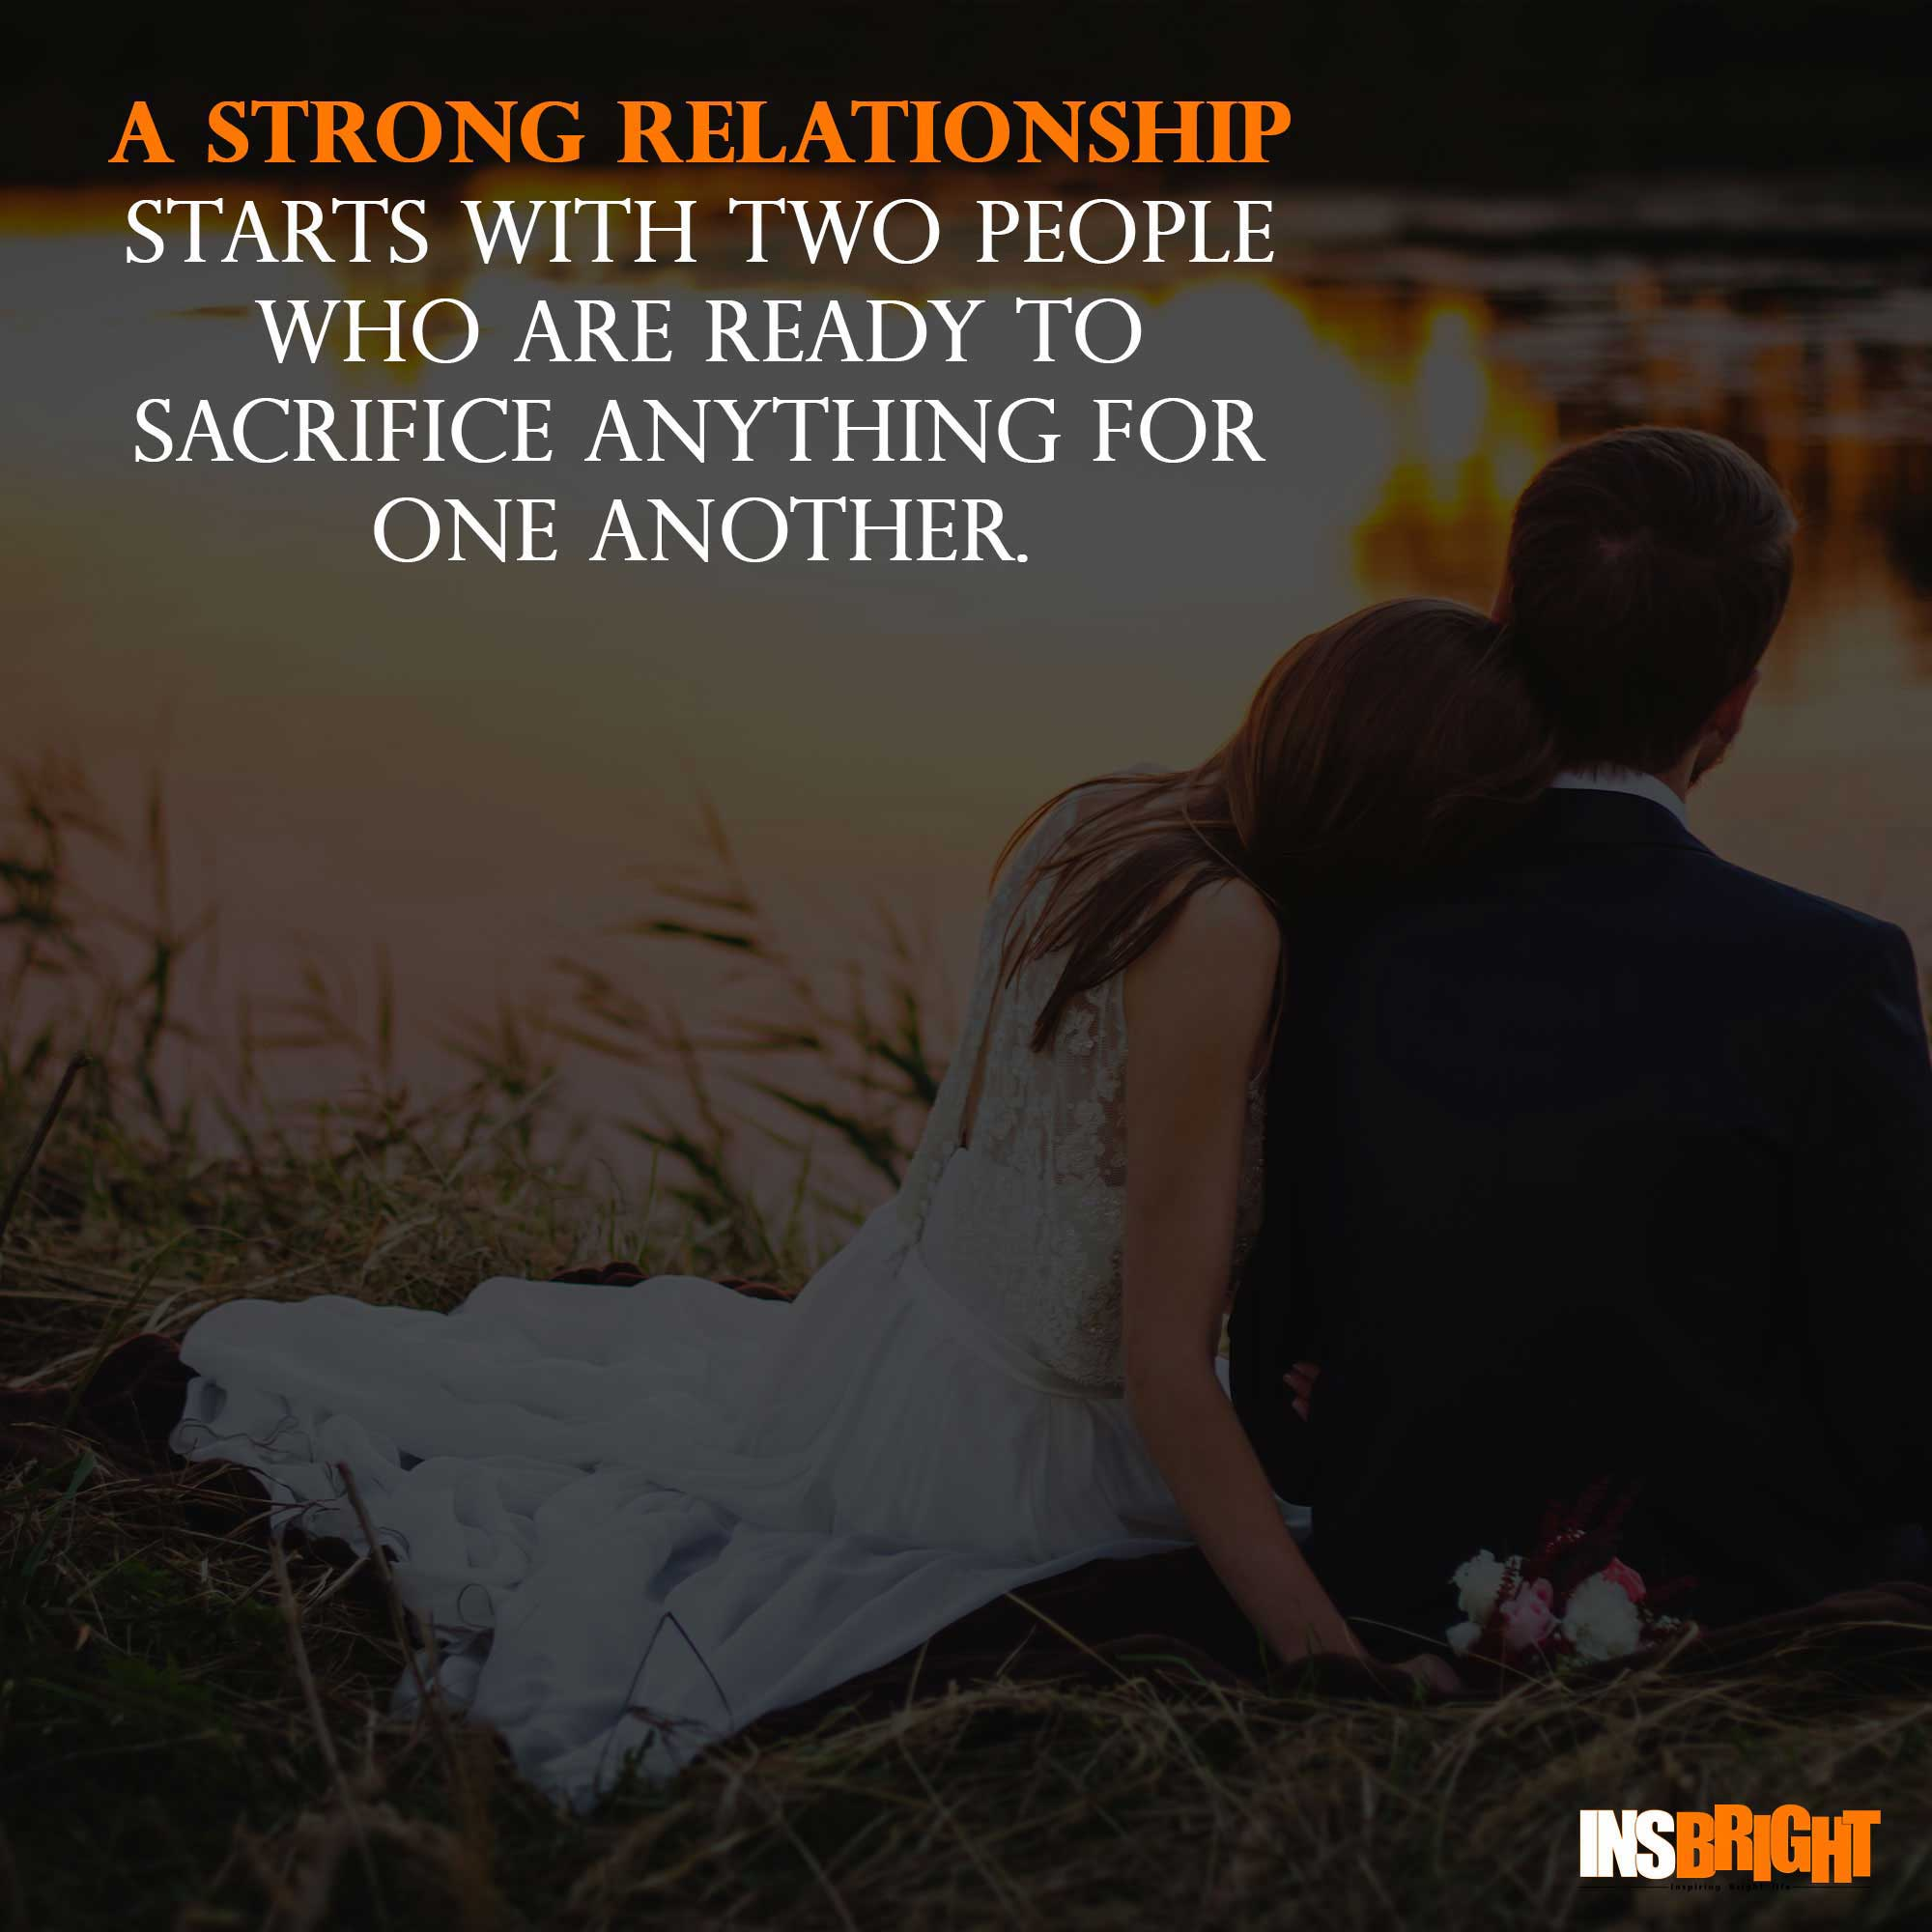 Quotes About Strong Relationship Inspirational Relationship Quotes With Images For Him Or Her